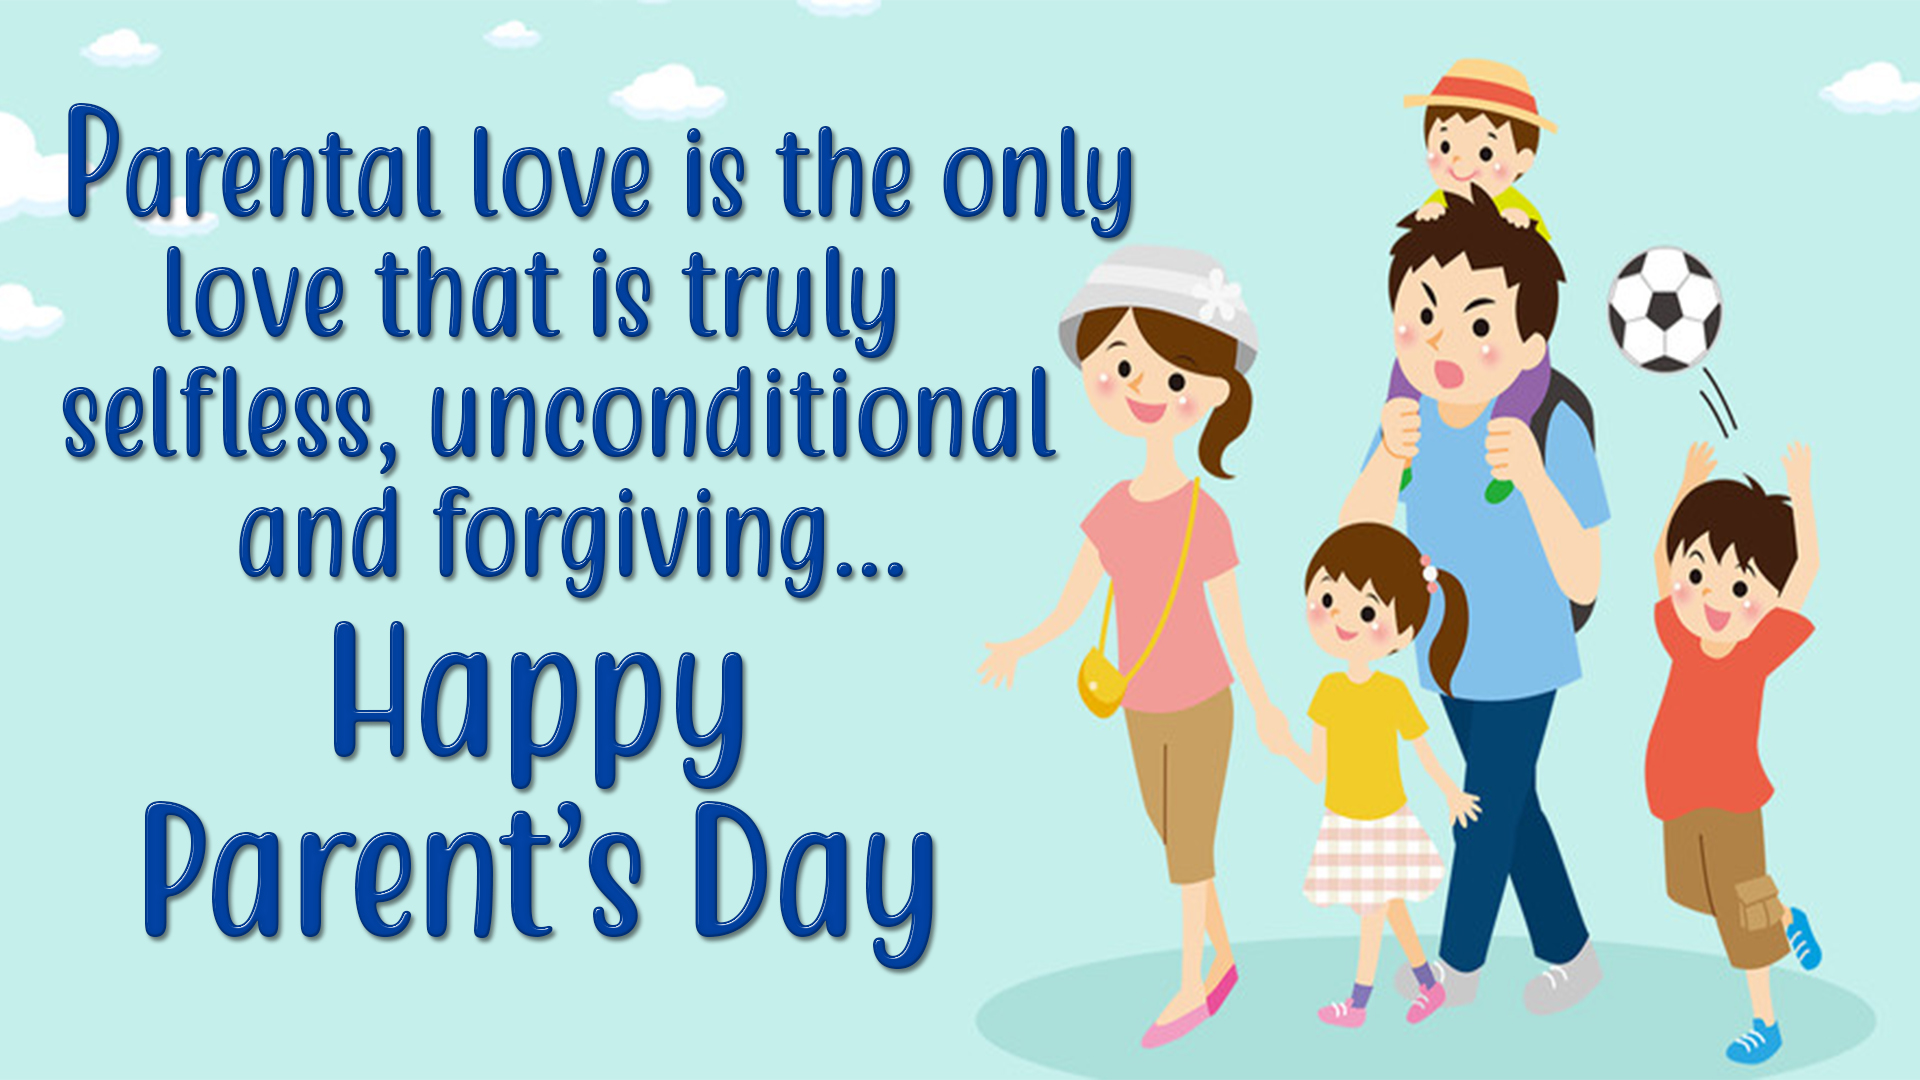 Happy Parents' Day 2021 -wishes, Quotes, Greetings, Messages, SMS, Whatsapp status, cards, Banners, Drawings, Pics, Wallpapers, Posters